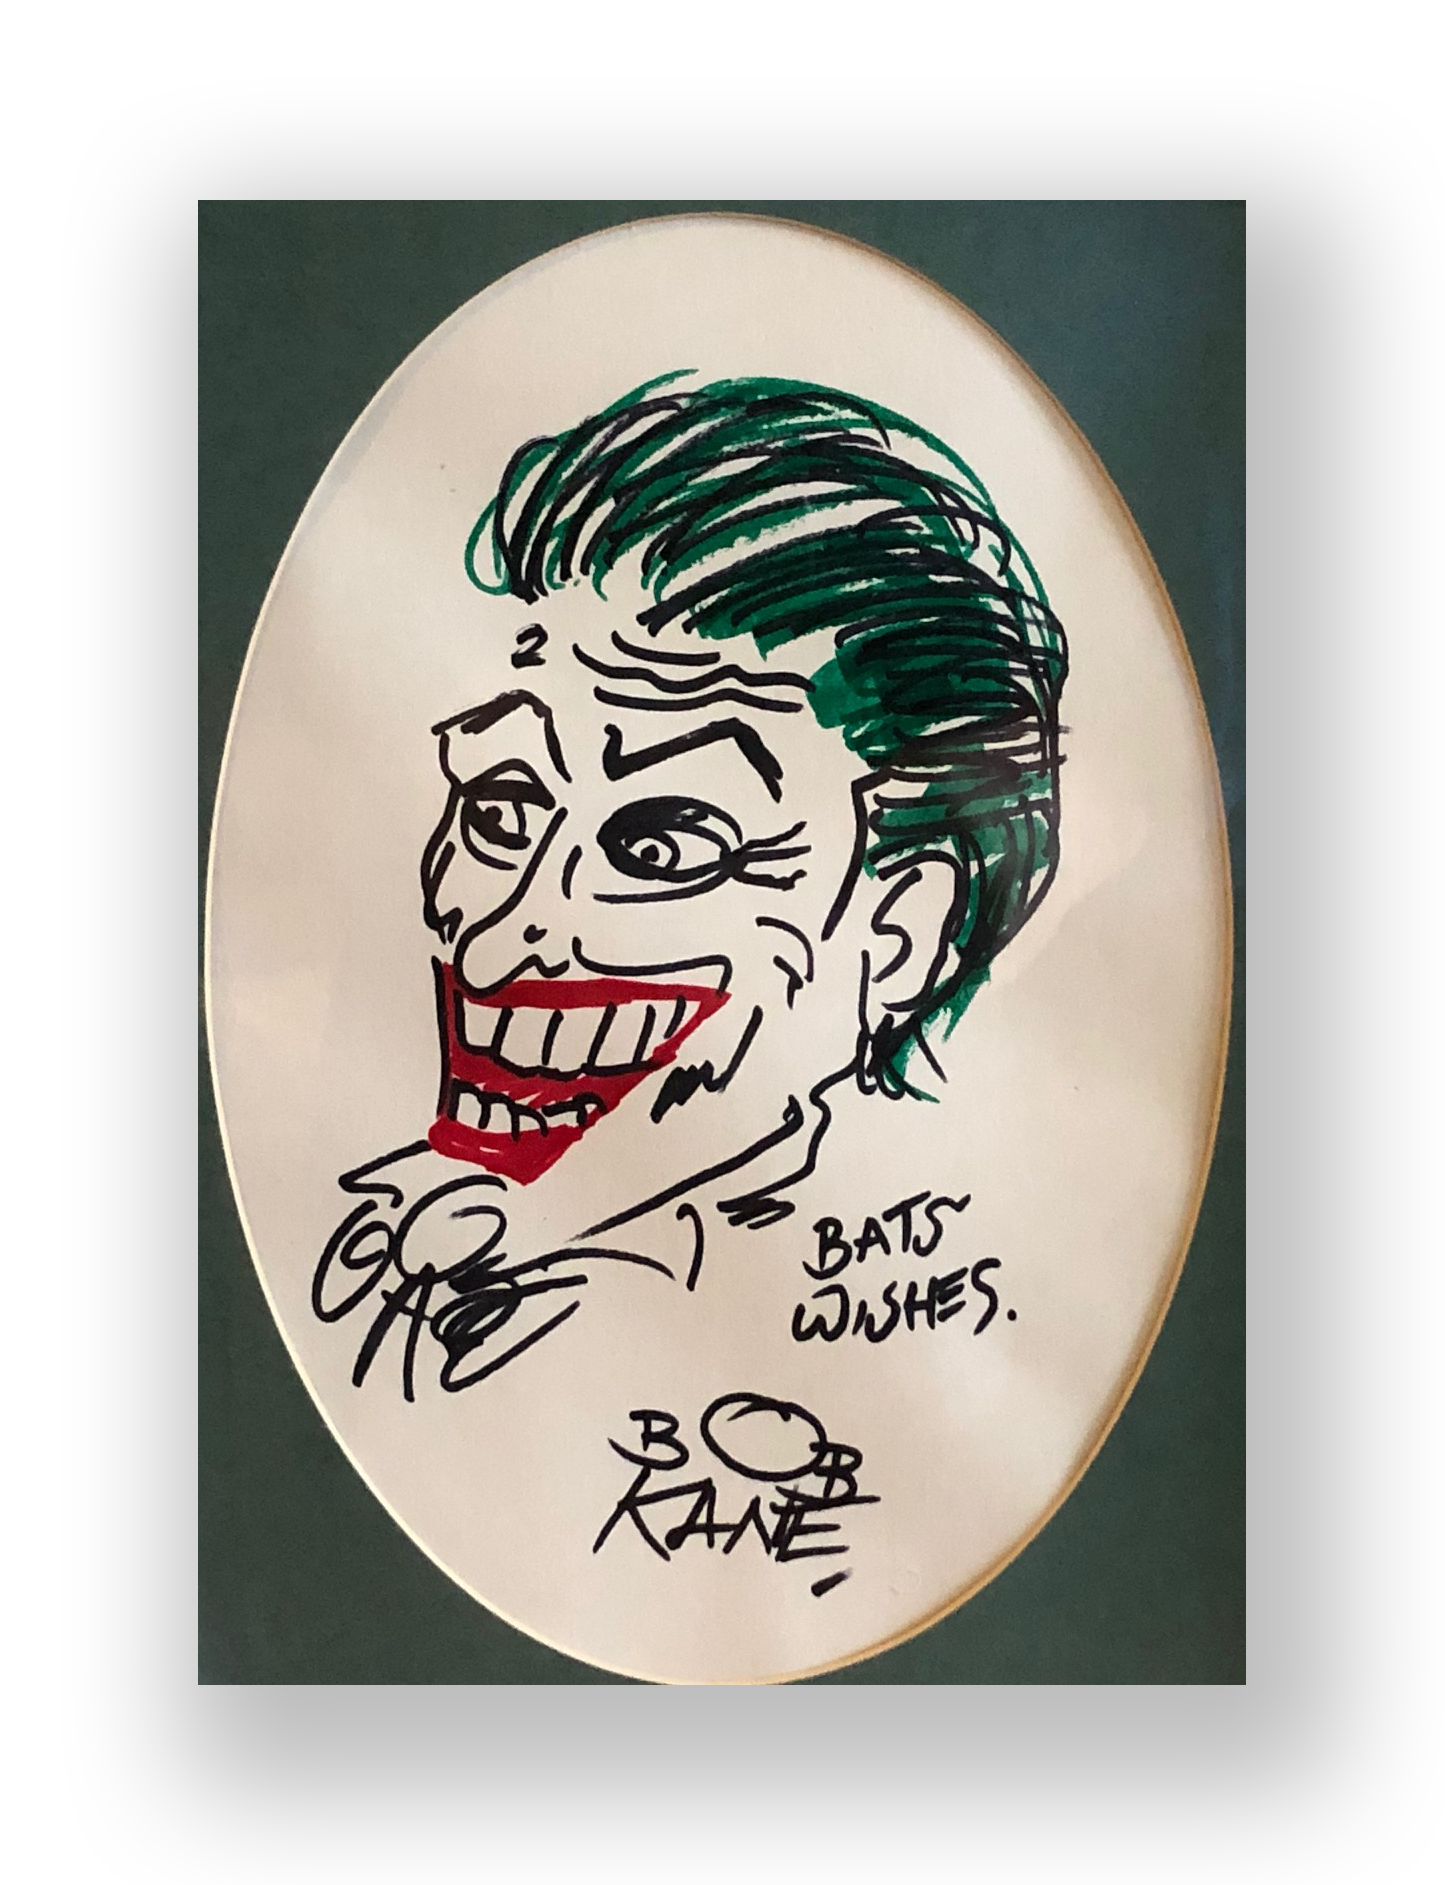 "Bob Kane  ""The Joker""  Original vintage illustration  Mixed media on Paper  6.5 x 9.5 inches  Circa 1970's  Acquired directly from him at a booth where he appeared with CC Beck at a comicon"